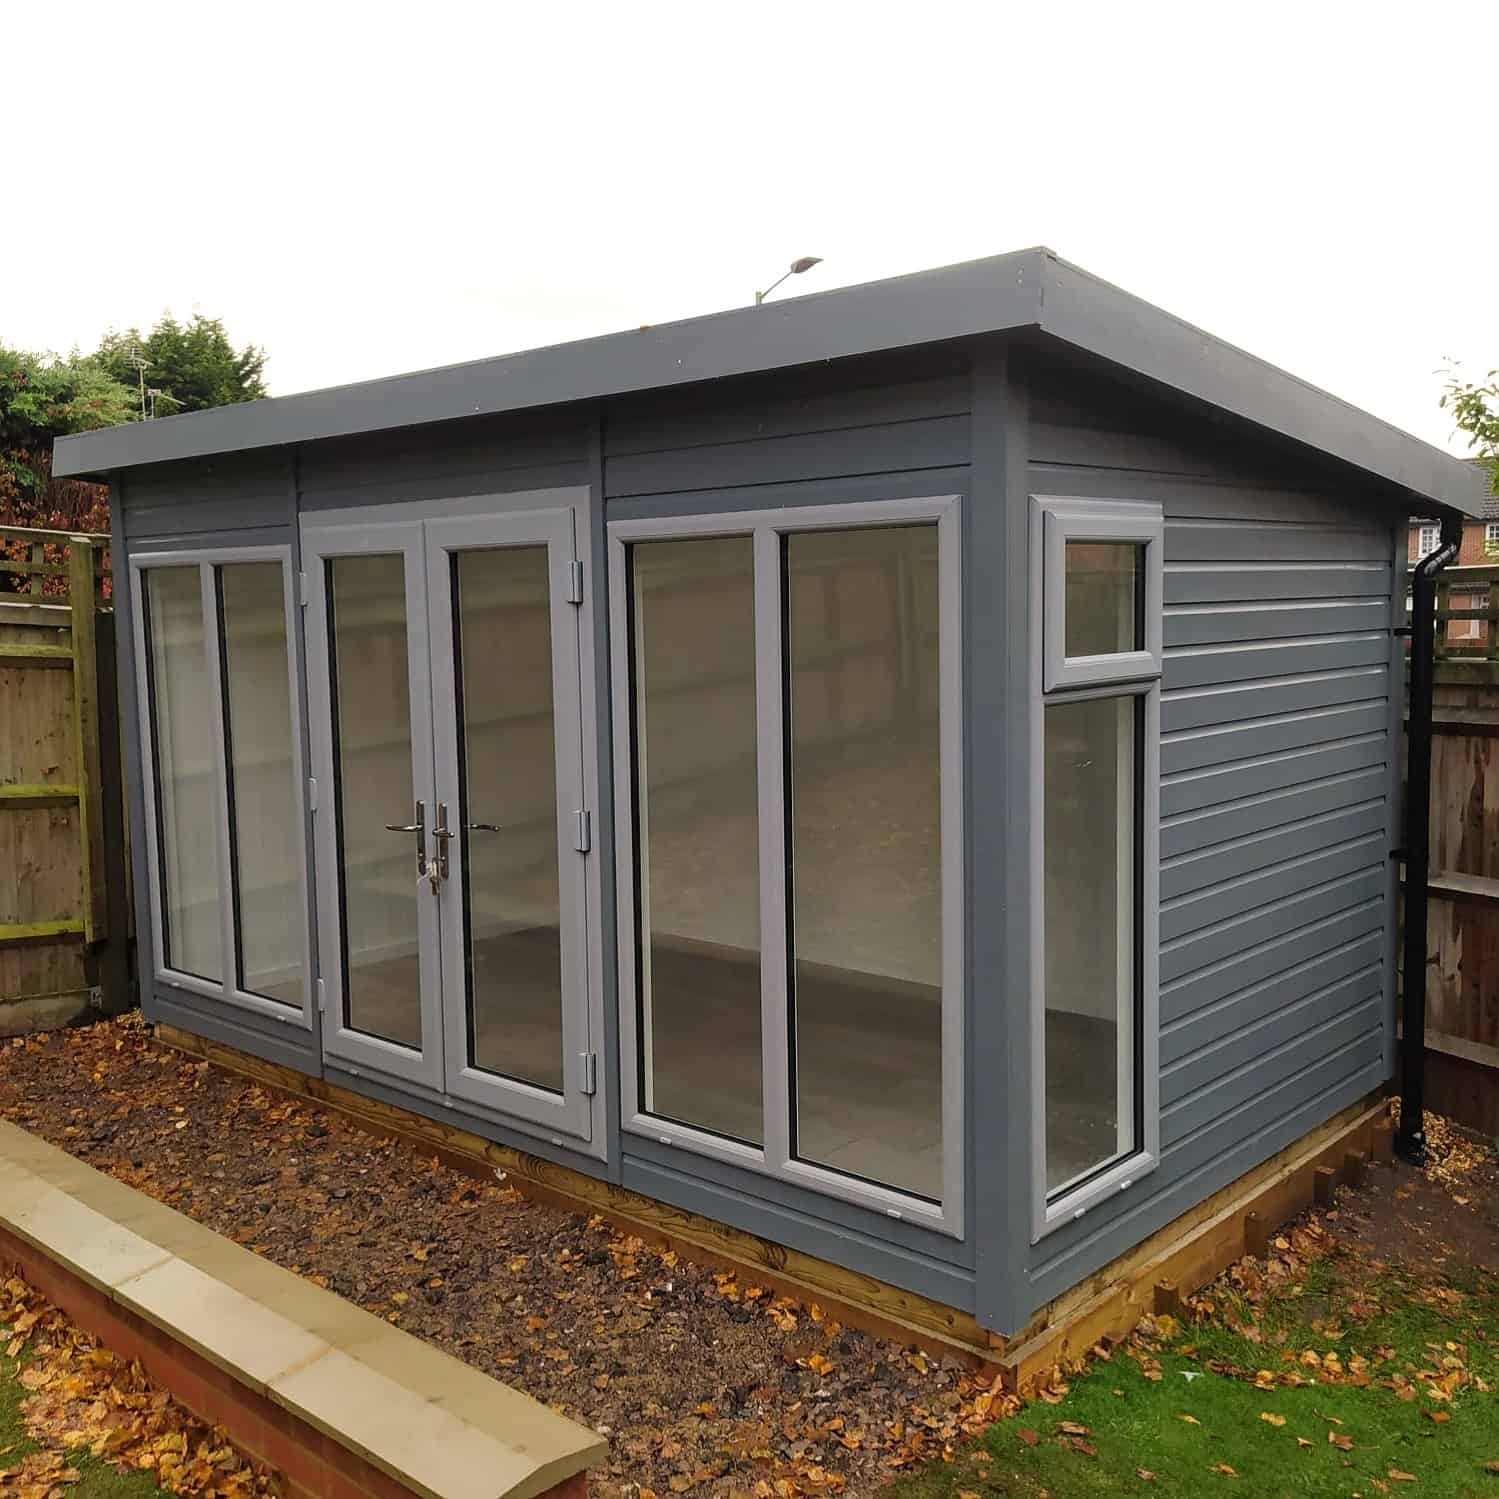 14′ x 8′ Insulated Garden Room Podington Pent Roof Studio By A&J